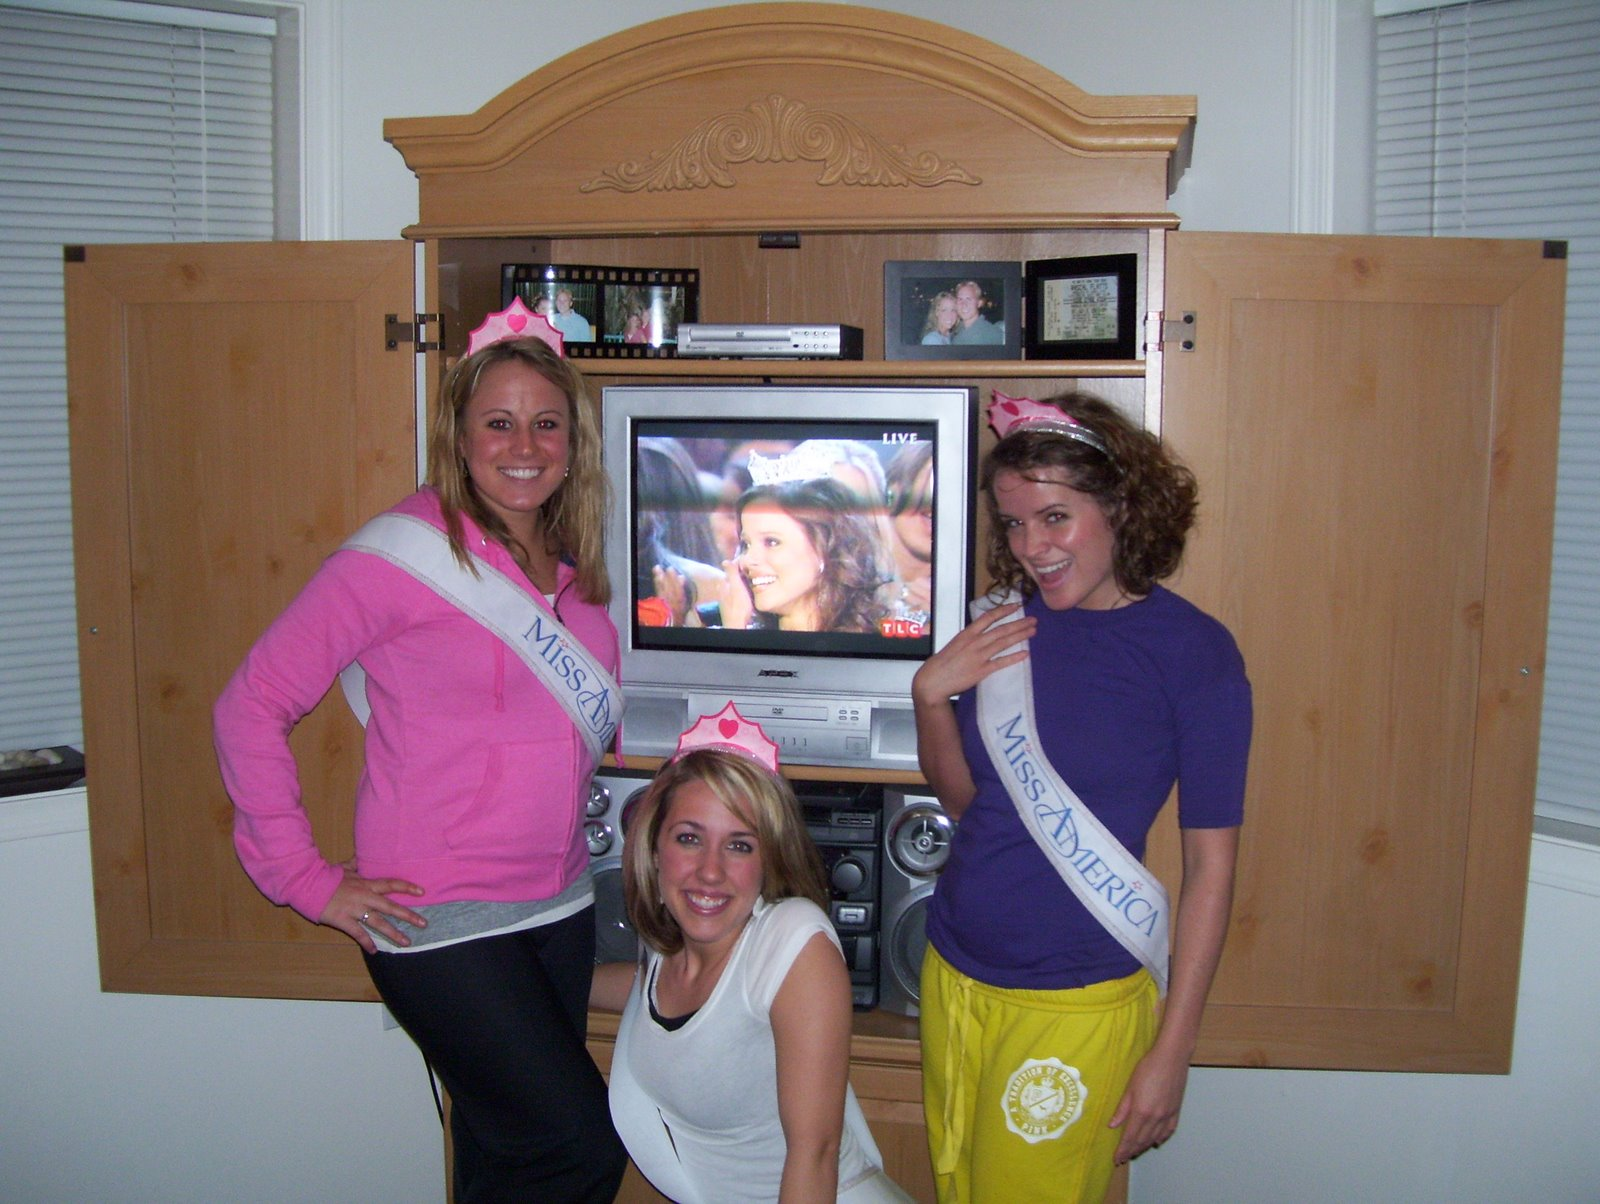 [Brittany+and+kaylie+Miss+America]